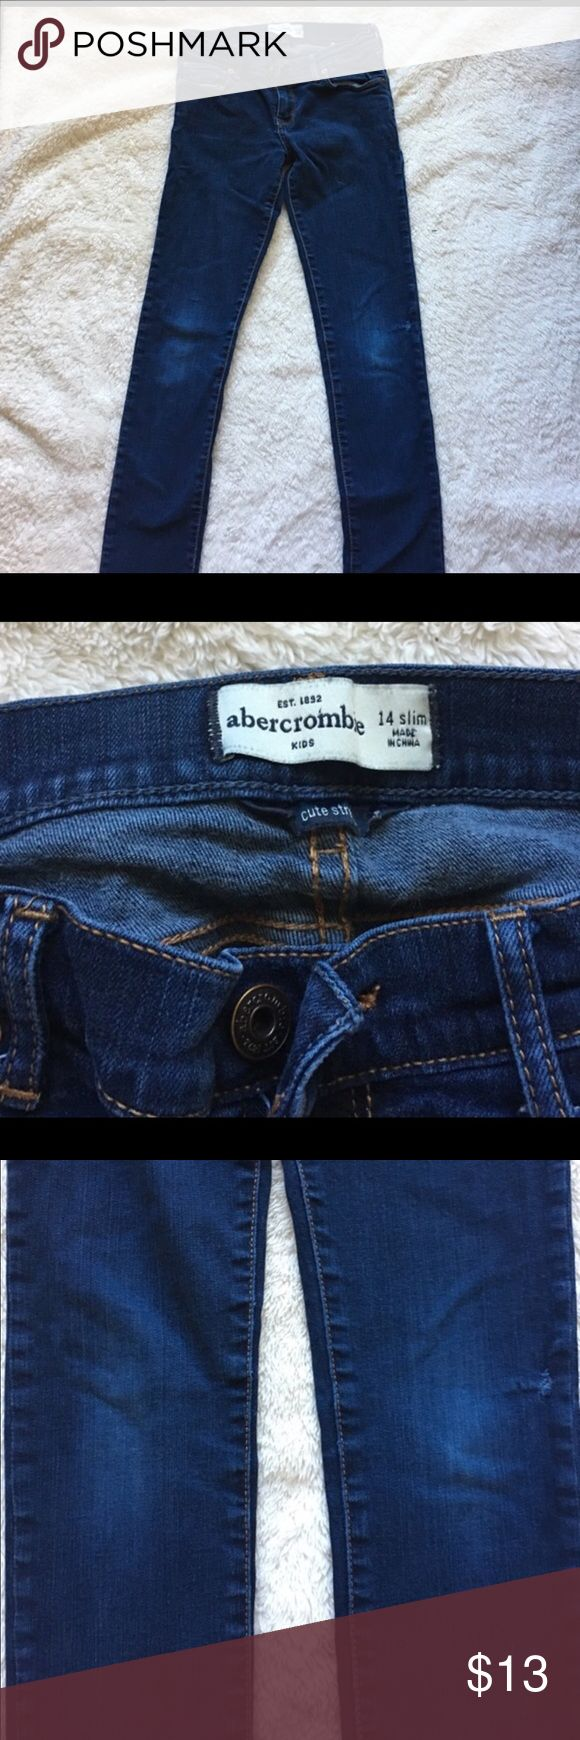 Abercrombie kids girls skinny jeans Abercrombie girls skinny jeans size 14.. a slight worn on the knees but still very good jeans.. please ask questions before purchasing.. abercrombie kids Bottoms Jeans